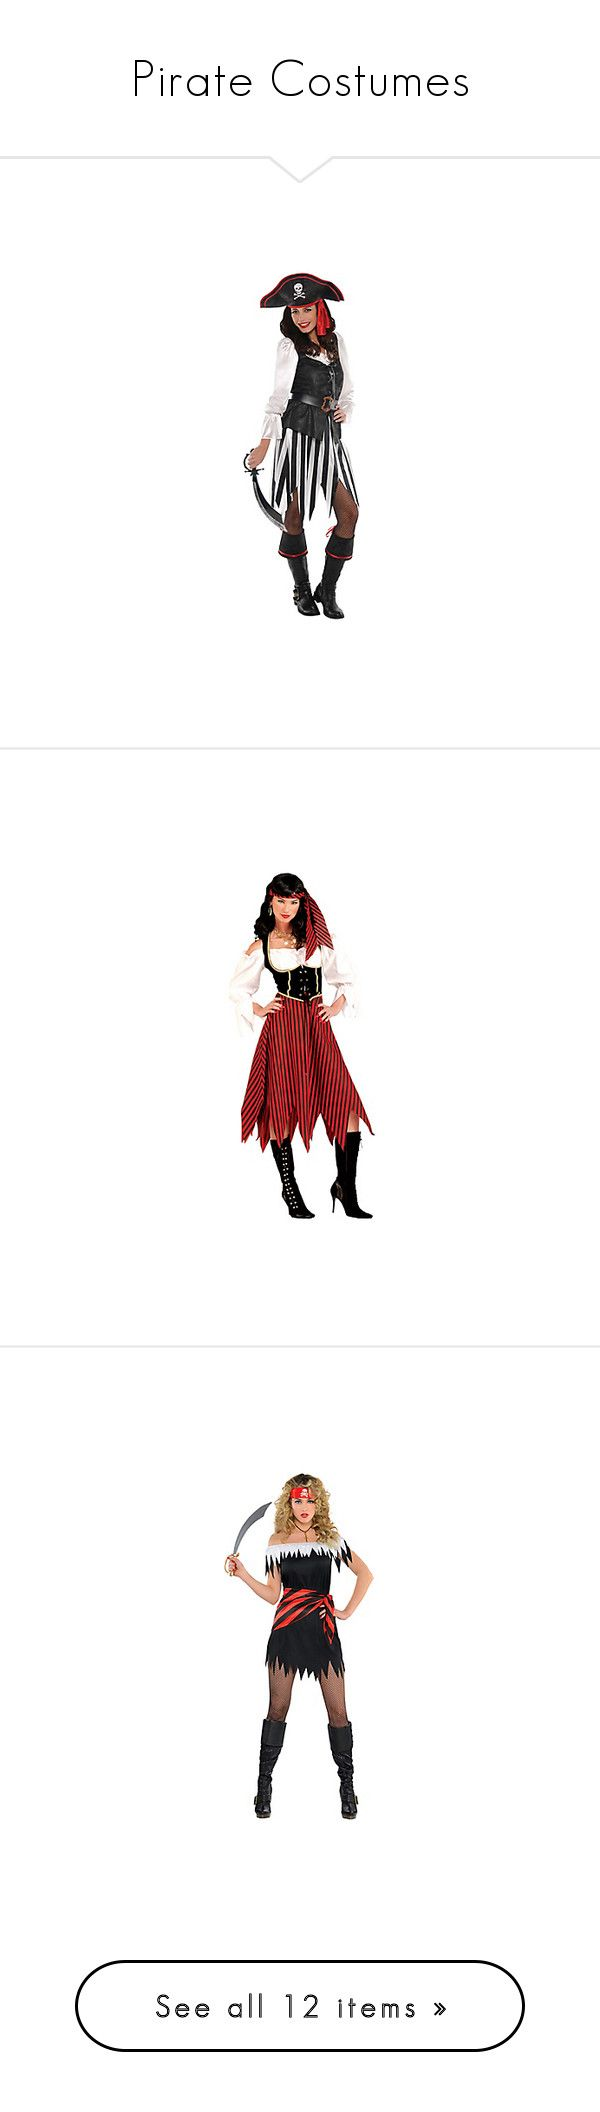 """Pirate Costumes"" by itsablingthing ❤ liked on Polyvore featuring costumes, adult pirate costumes, sexy costumes, sexy adult halloween costumes, sexy adult costumes, pirate costume, womens pirate costume, ladies costumes, red pirate costume and red costume"